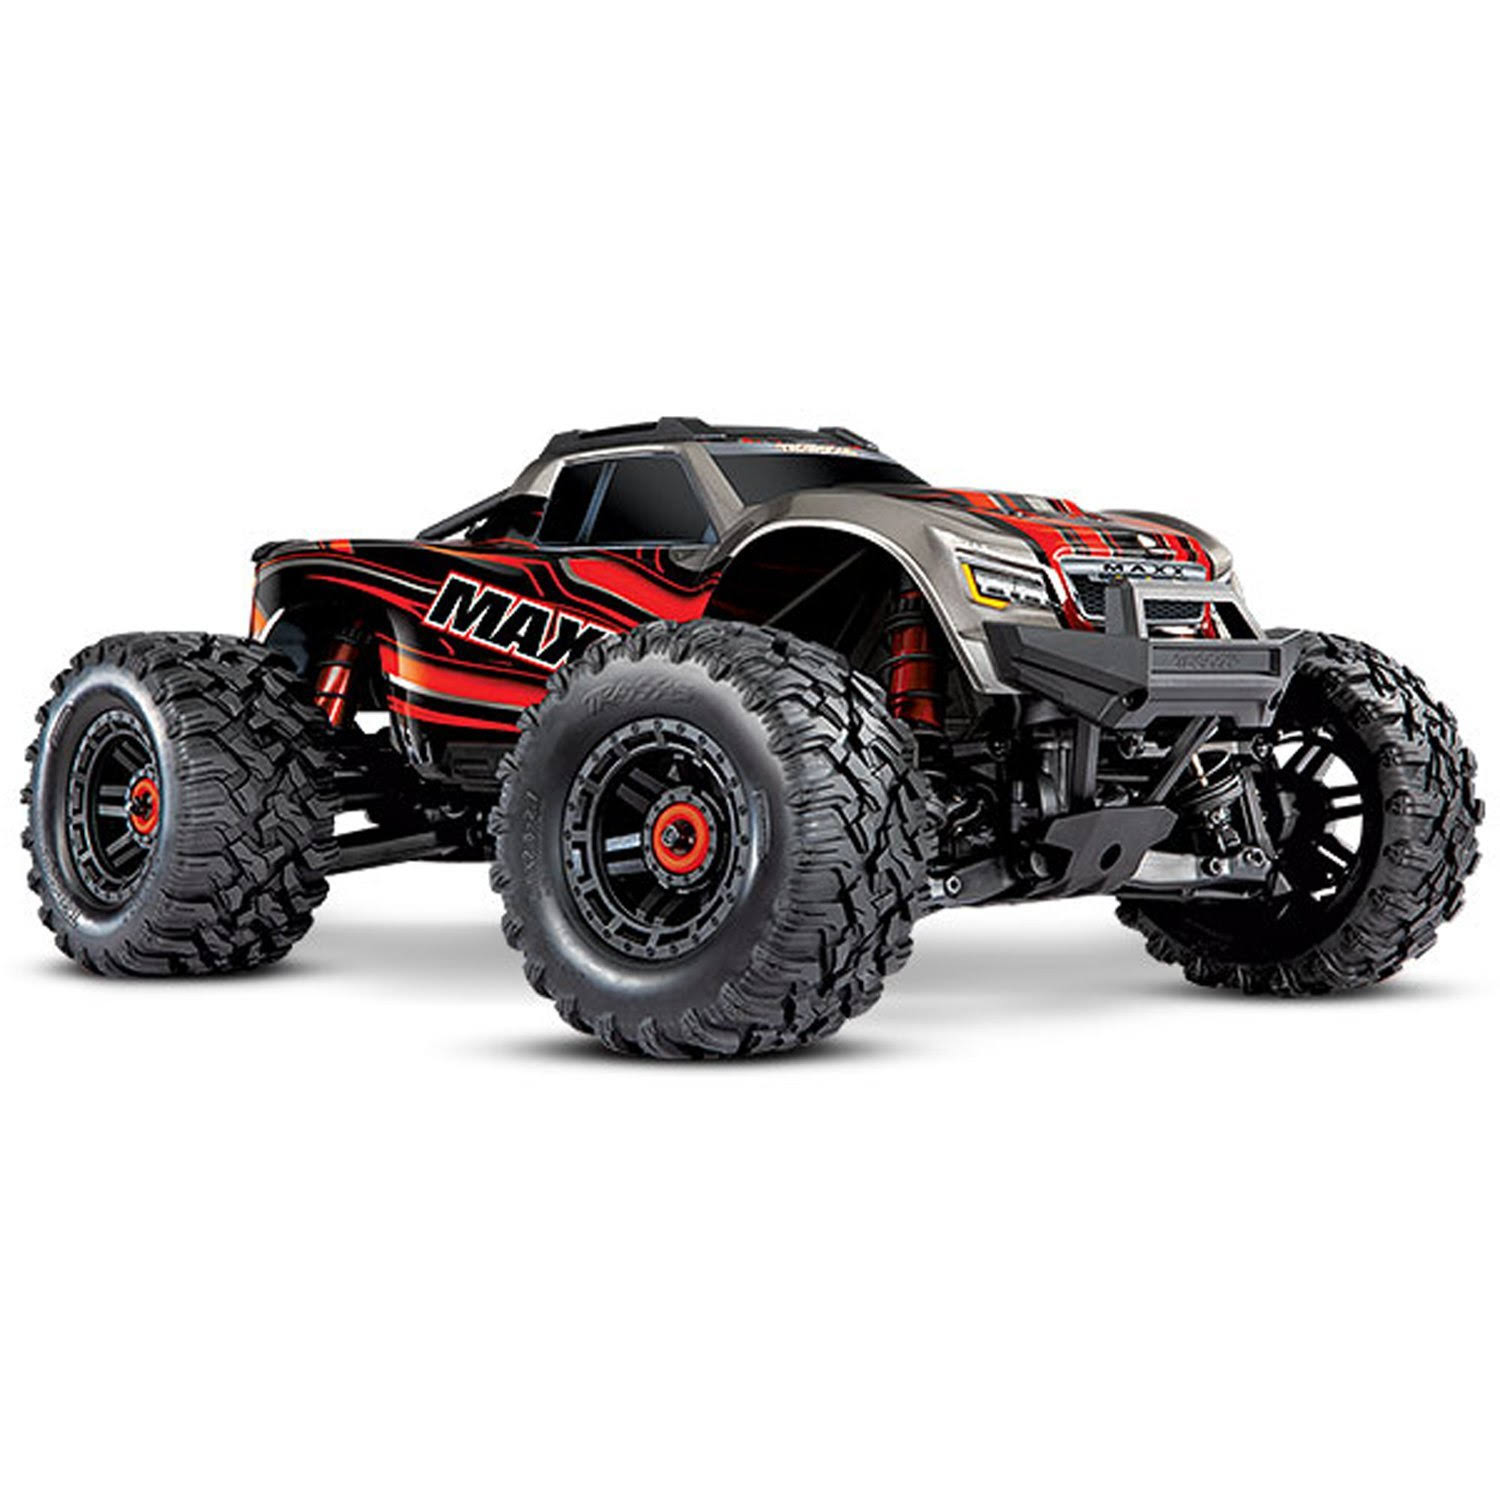 Traxxas 89076-4 - Maxx 1/10 4x4 Monster Truck RTR, Red